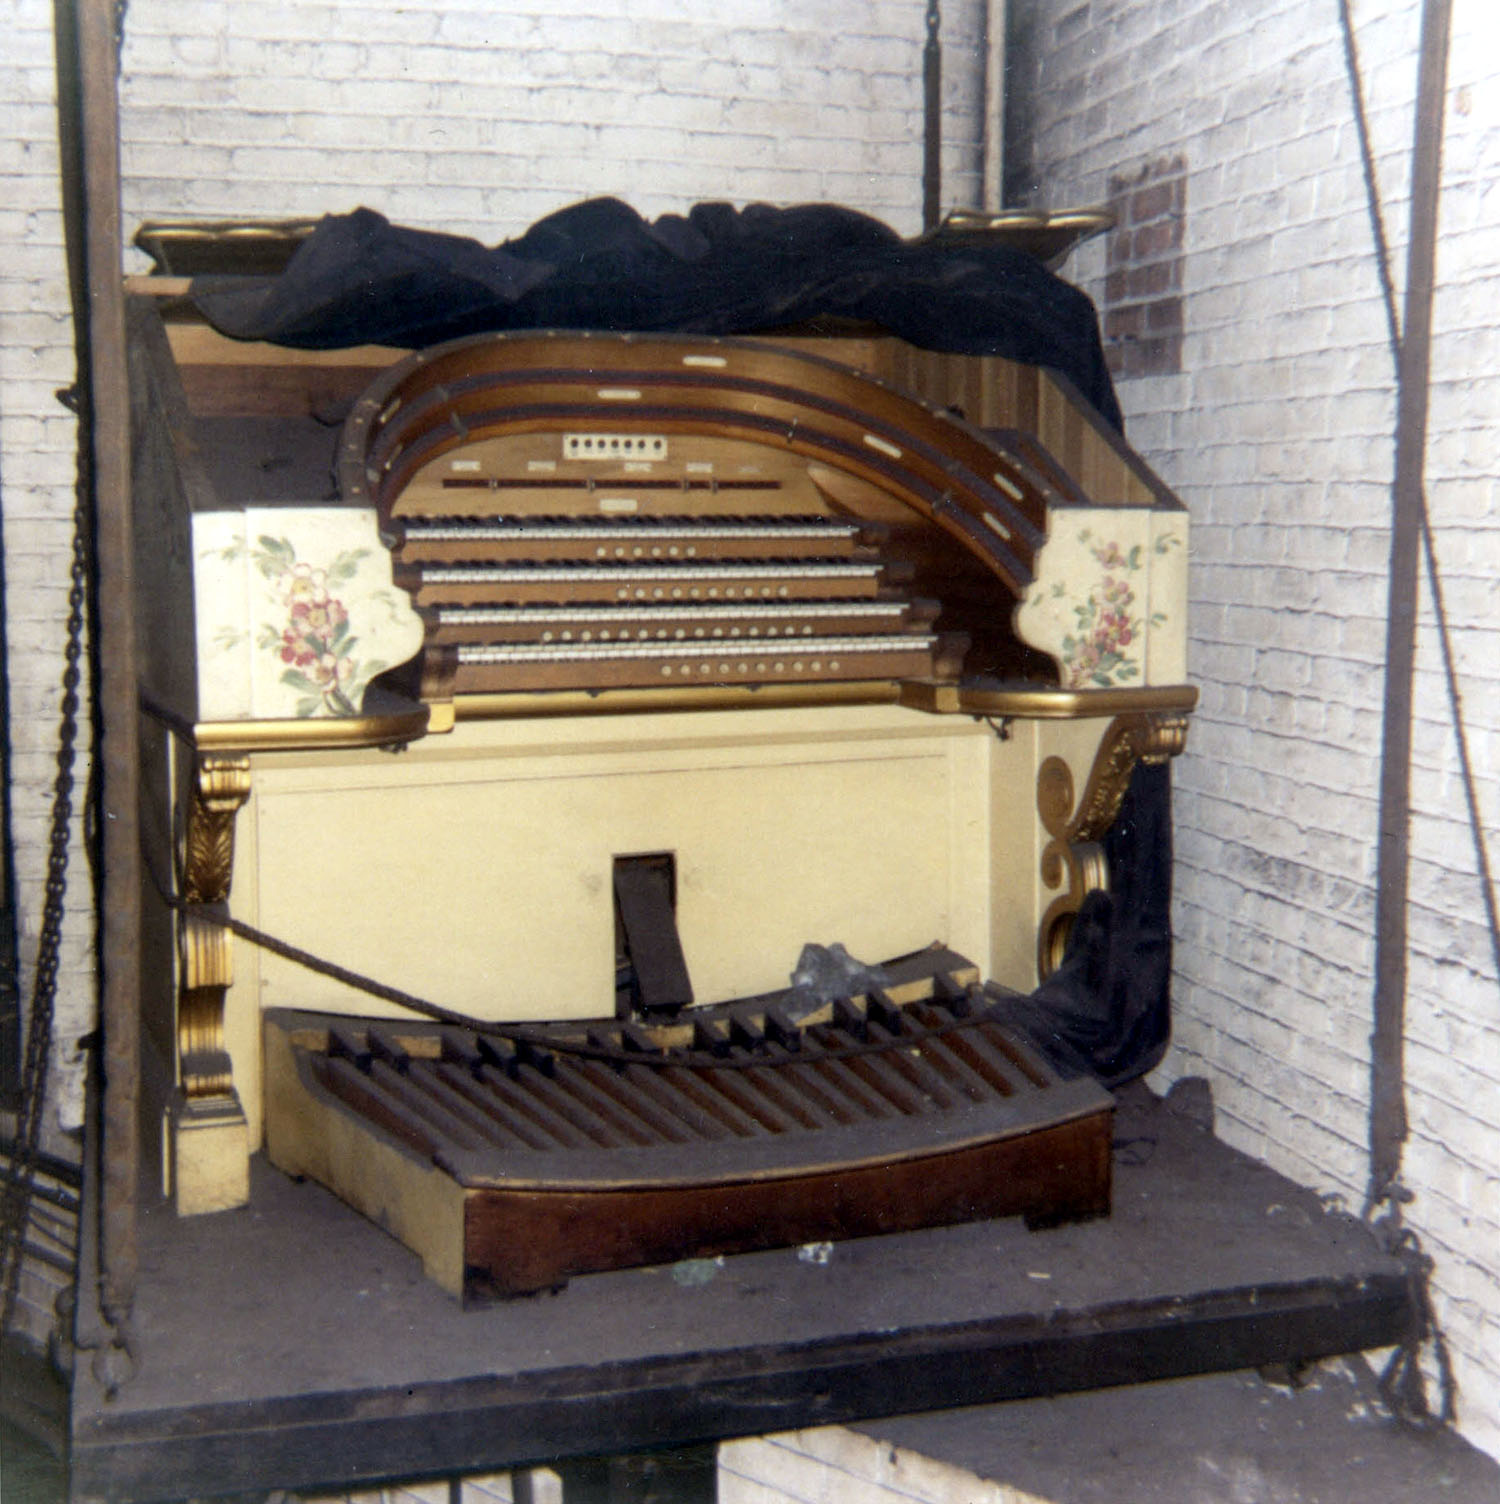 Slave Console of Wurlitzer Organ, Op. 1904 (1928) in the Fox Theatre - Brooklyn, N.Y. (photo: AJWB Collection)